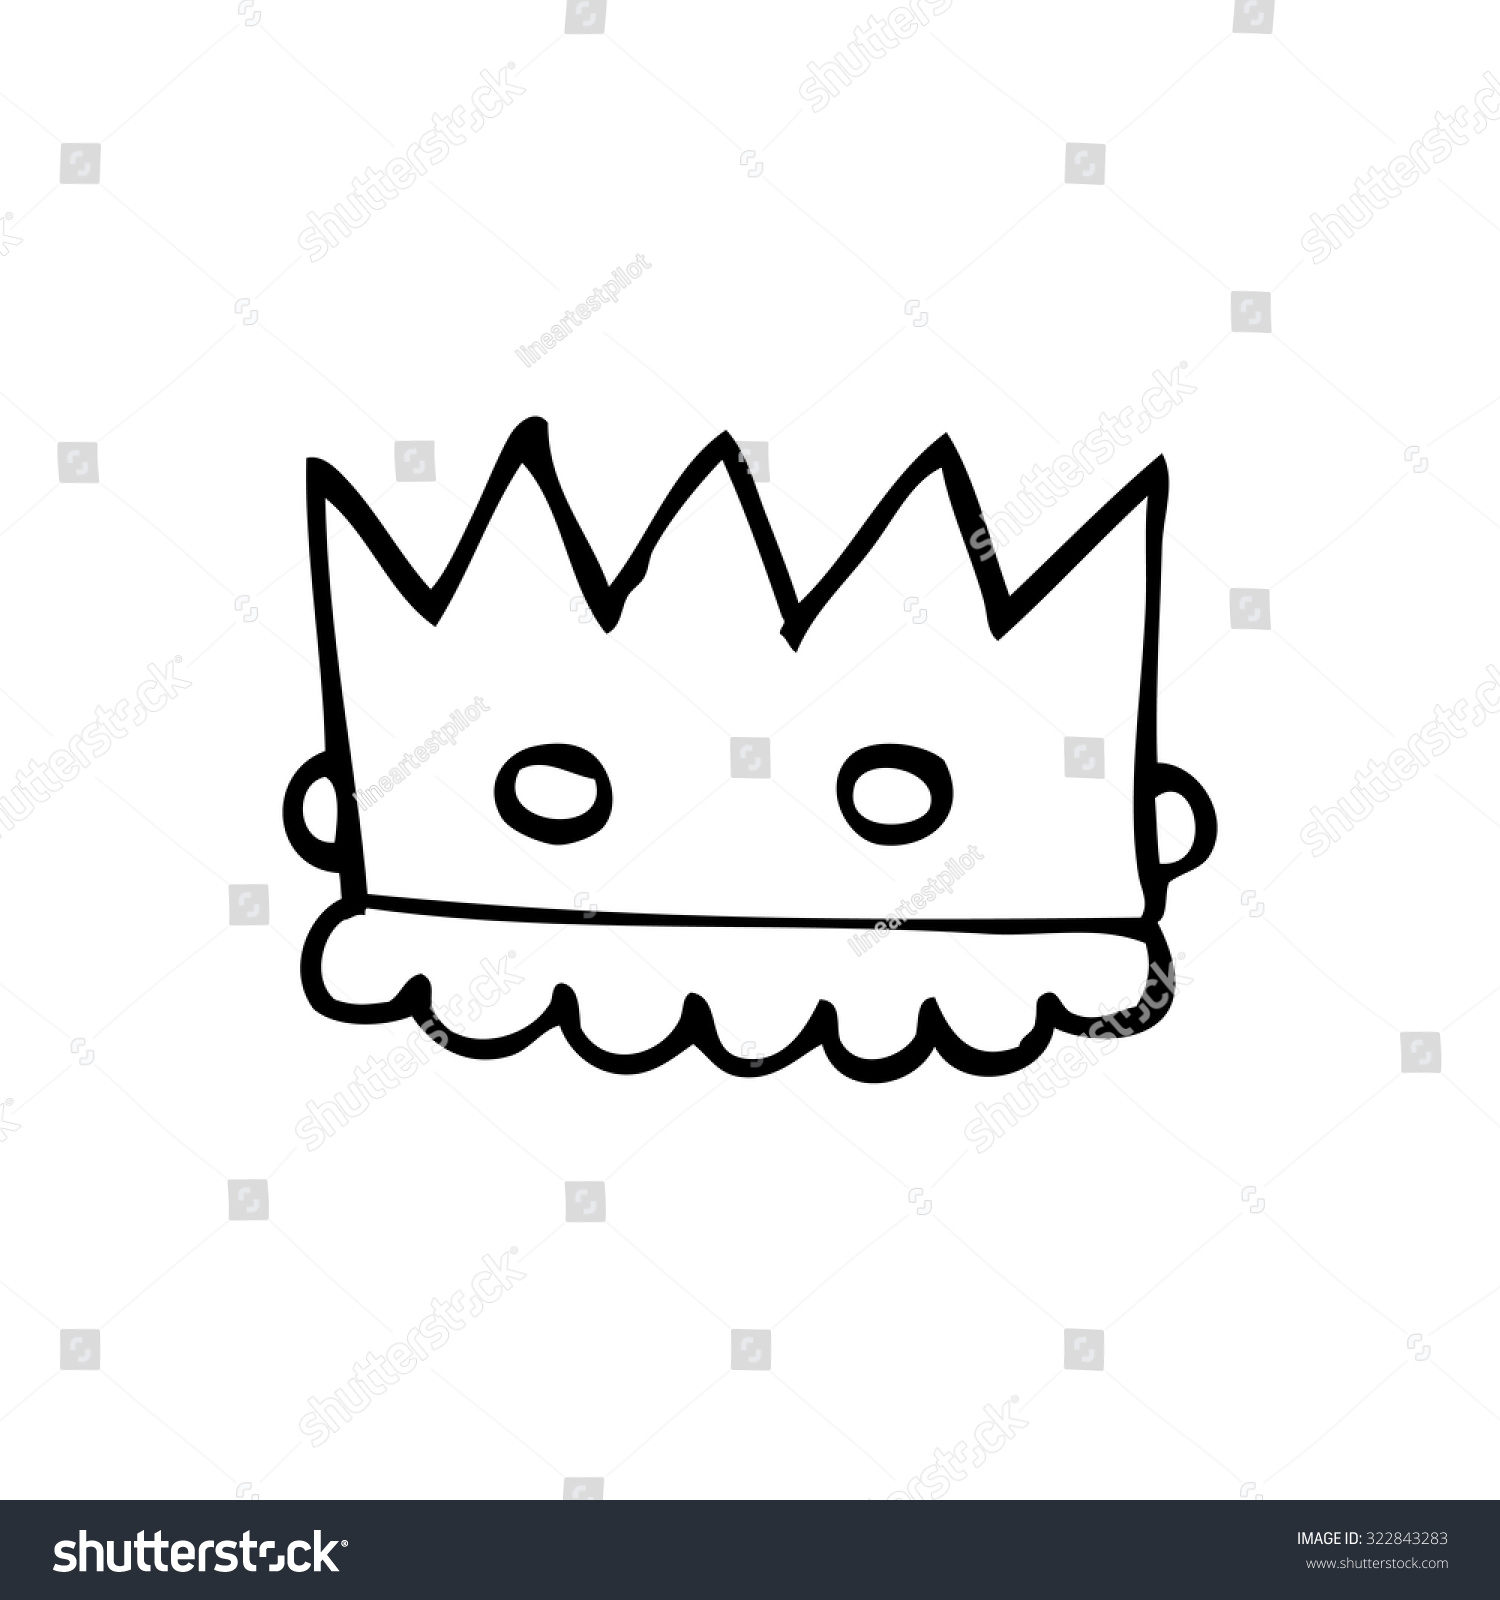 Simple Black White Line Drawing Cartoon Stock Vector Royalty Free 322843283 Set of 7 vector monochrome crowns for your cards, backgrounds, postcards, illustrations and other designs. shutterstock